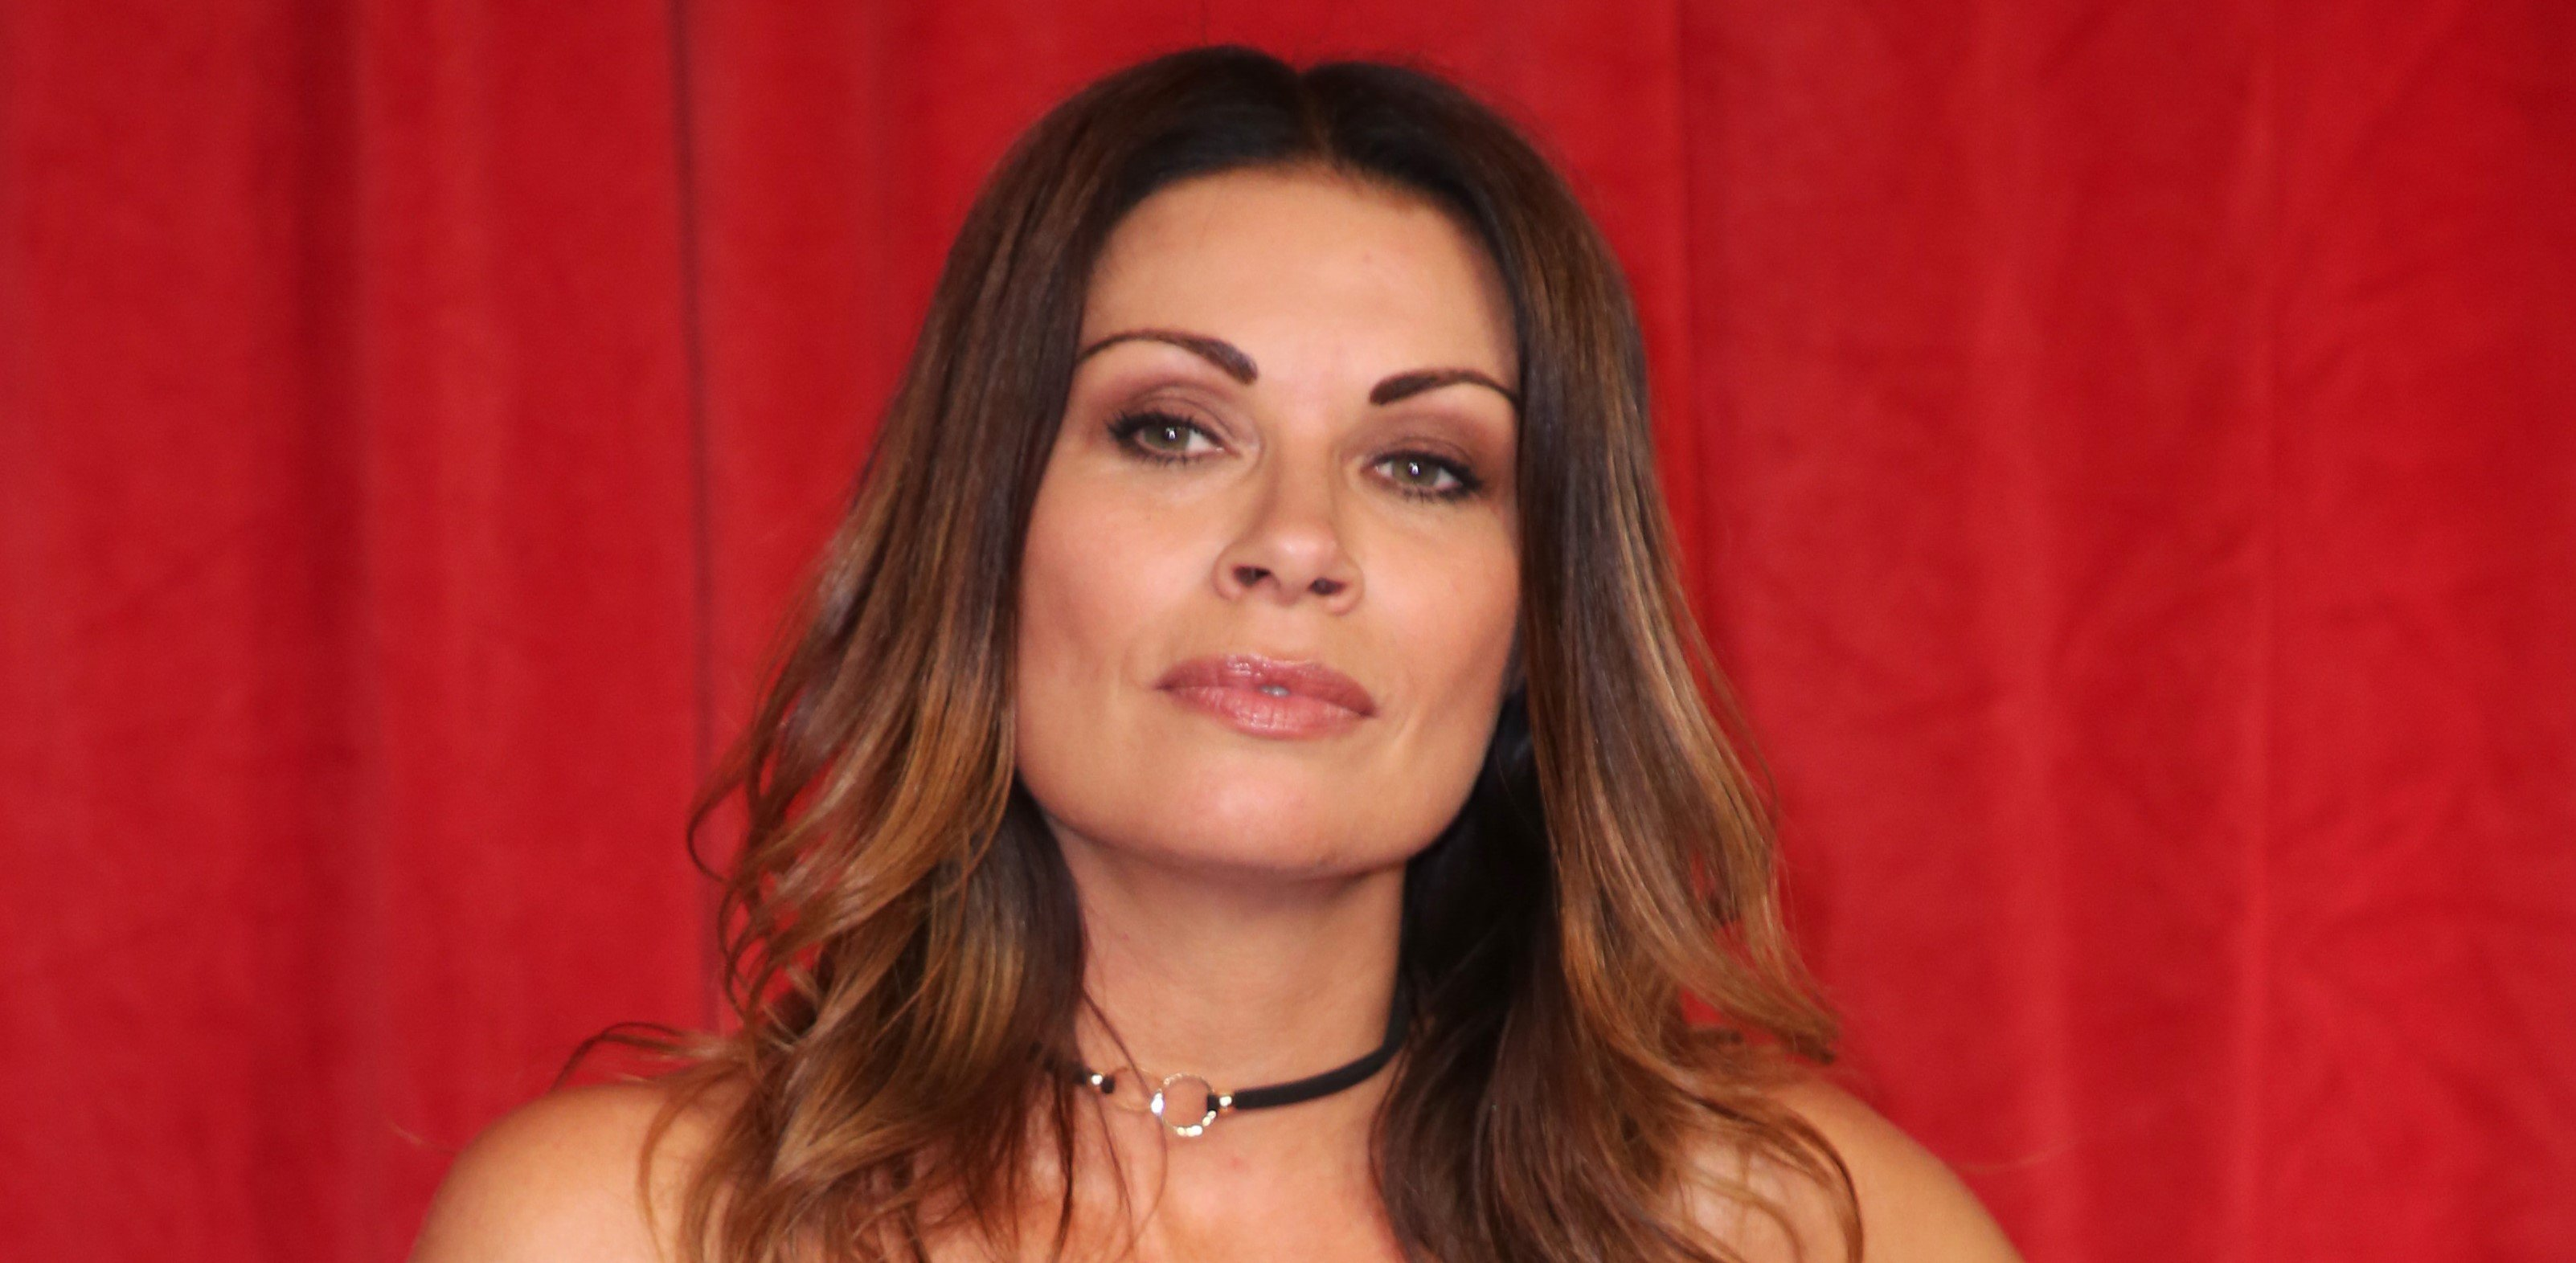 Coronation Street star Alison King 'cancels Greek wedding this month'